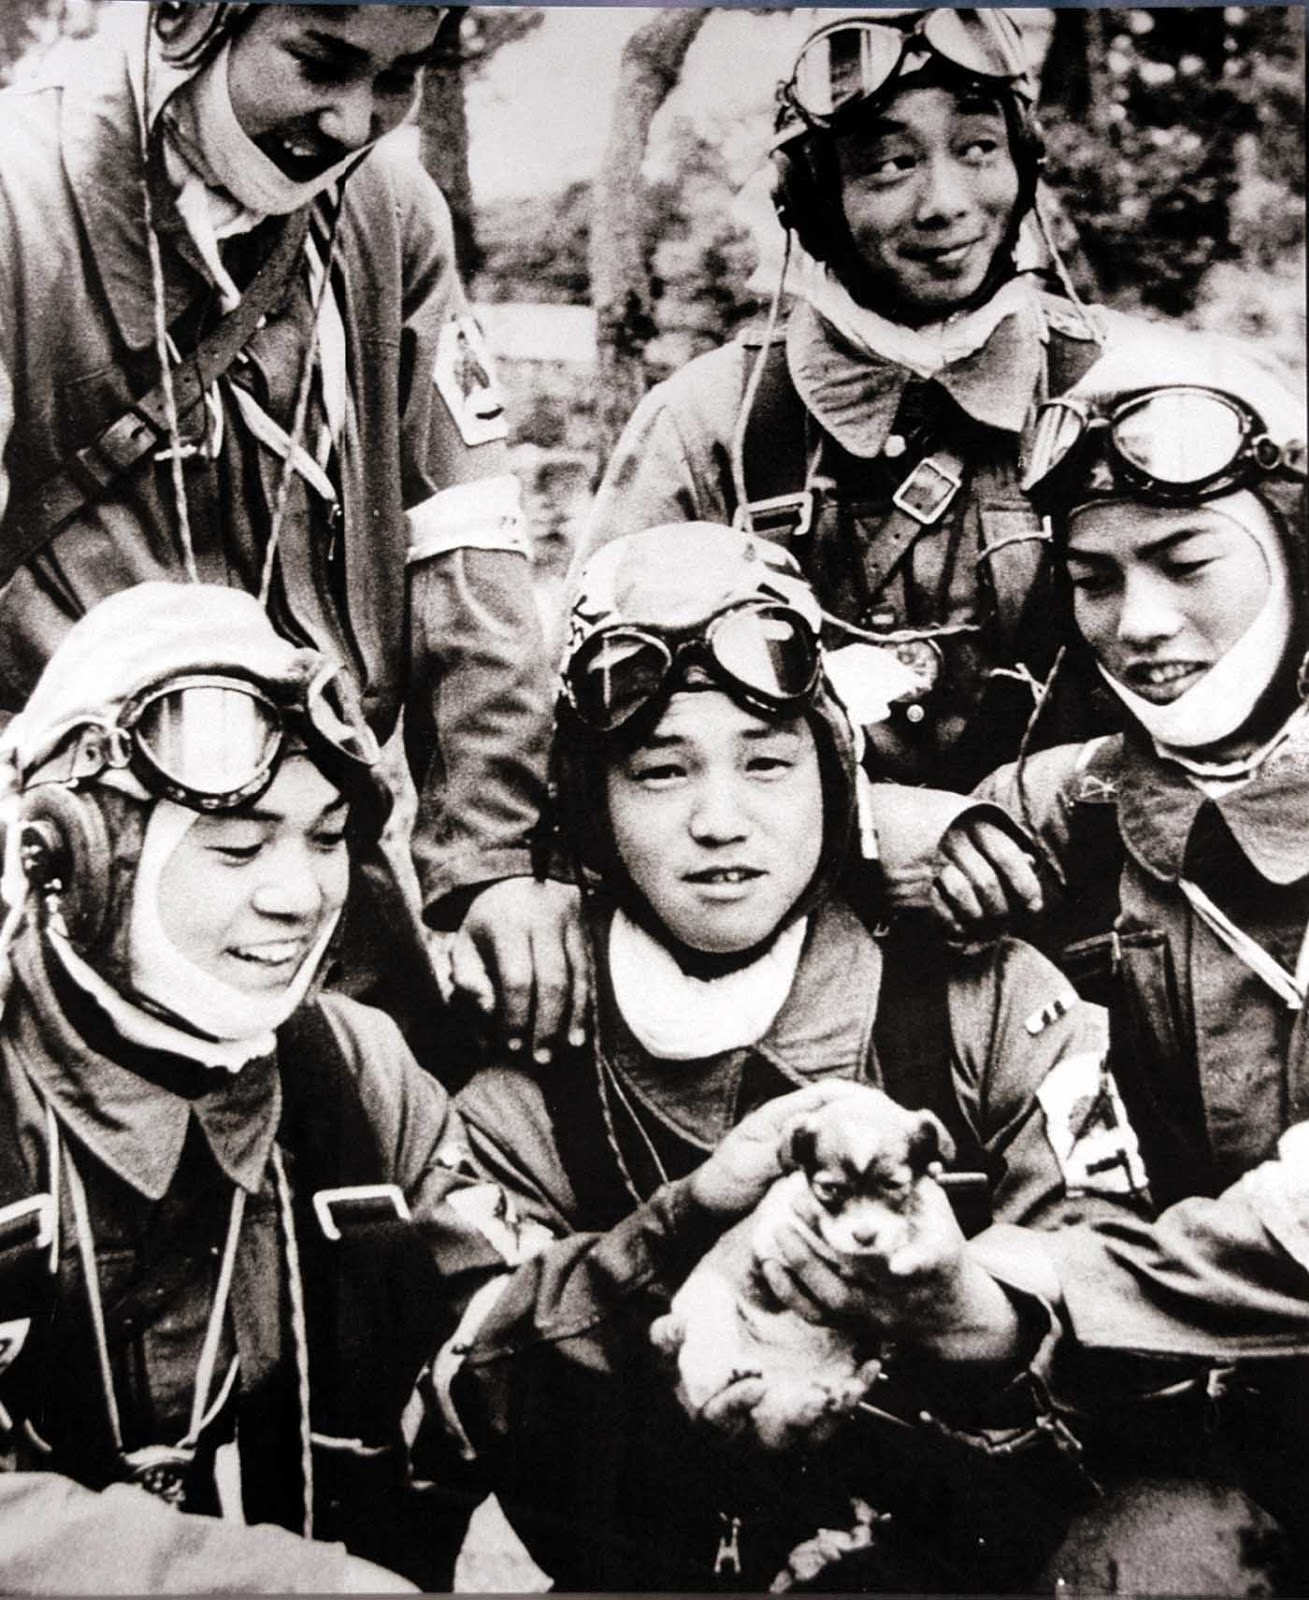 kamikaze-pilots-posing-with-a-puppy-on-the-day-before-their-suicide-missions-1945